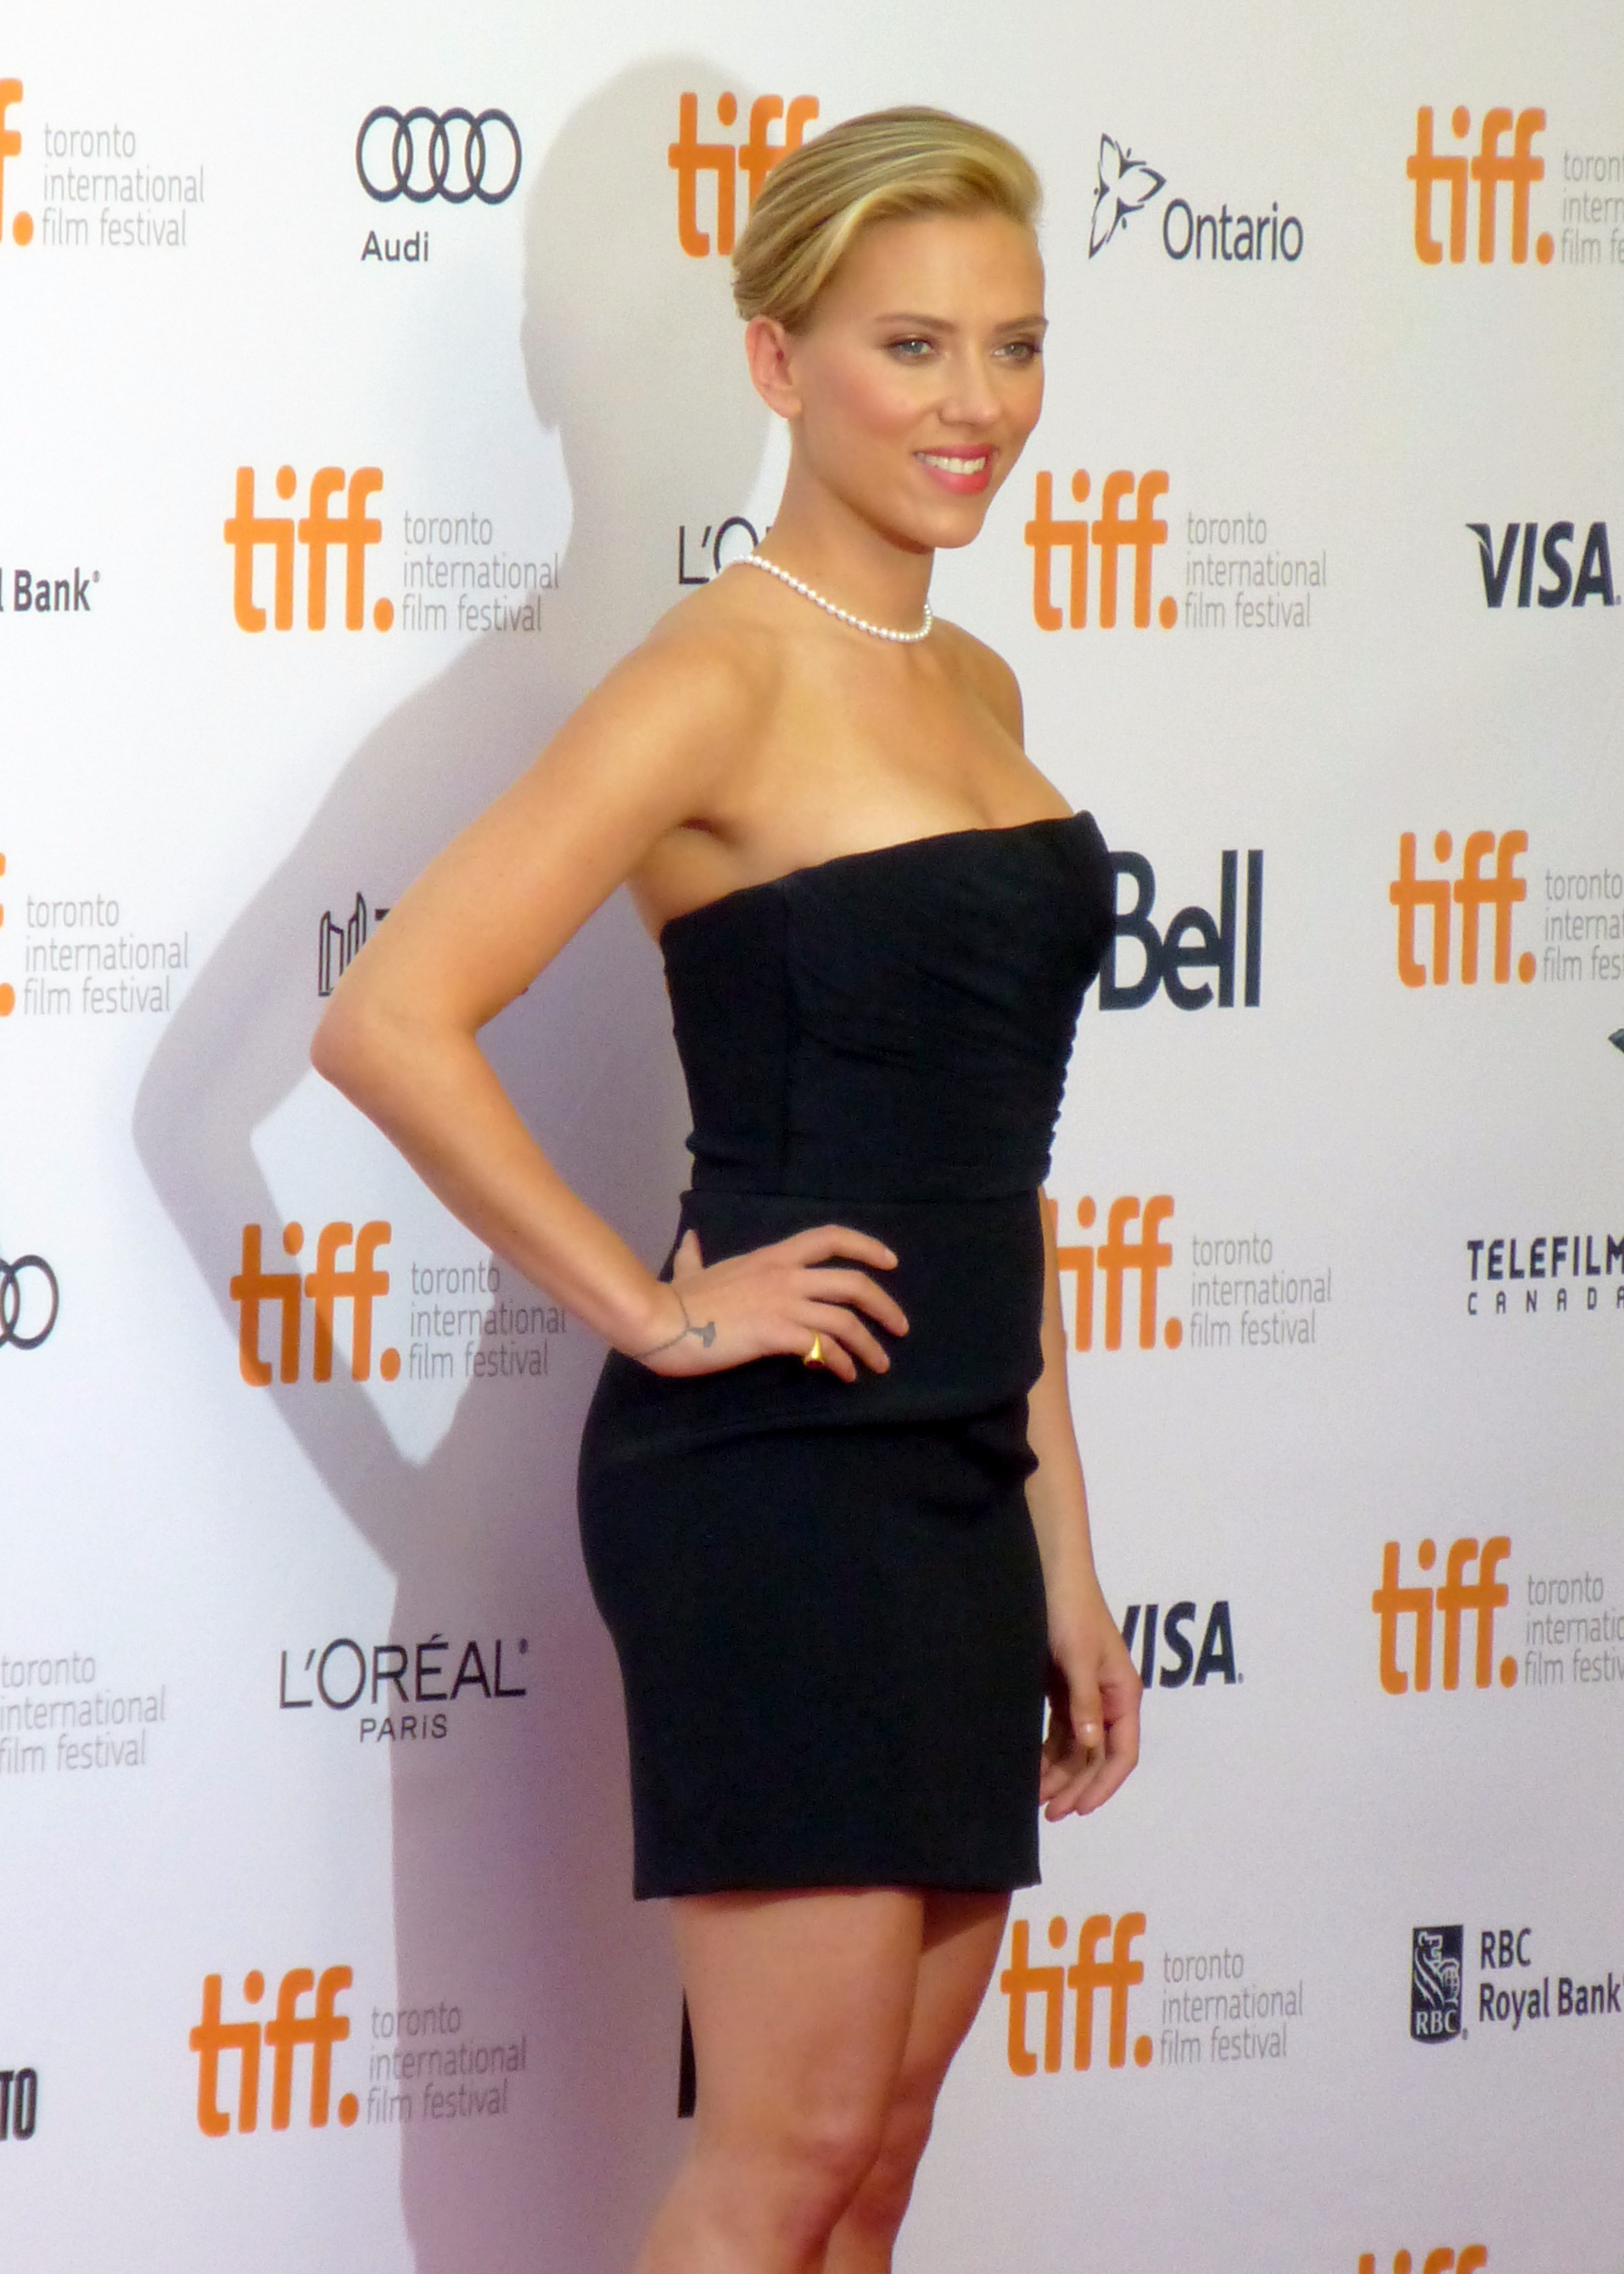 Scarlett Johansson at the Premiere of Don Jon, 2013 Toronto Film Festival by GabboT, CC 2.0 link: https://flic.kr/p/fPqU2e